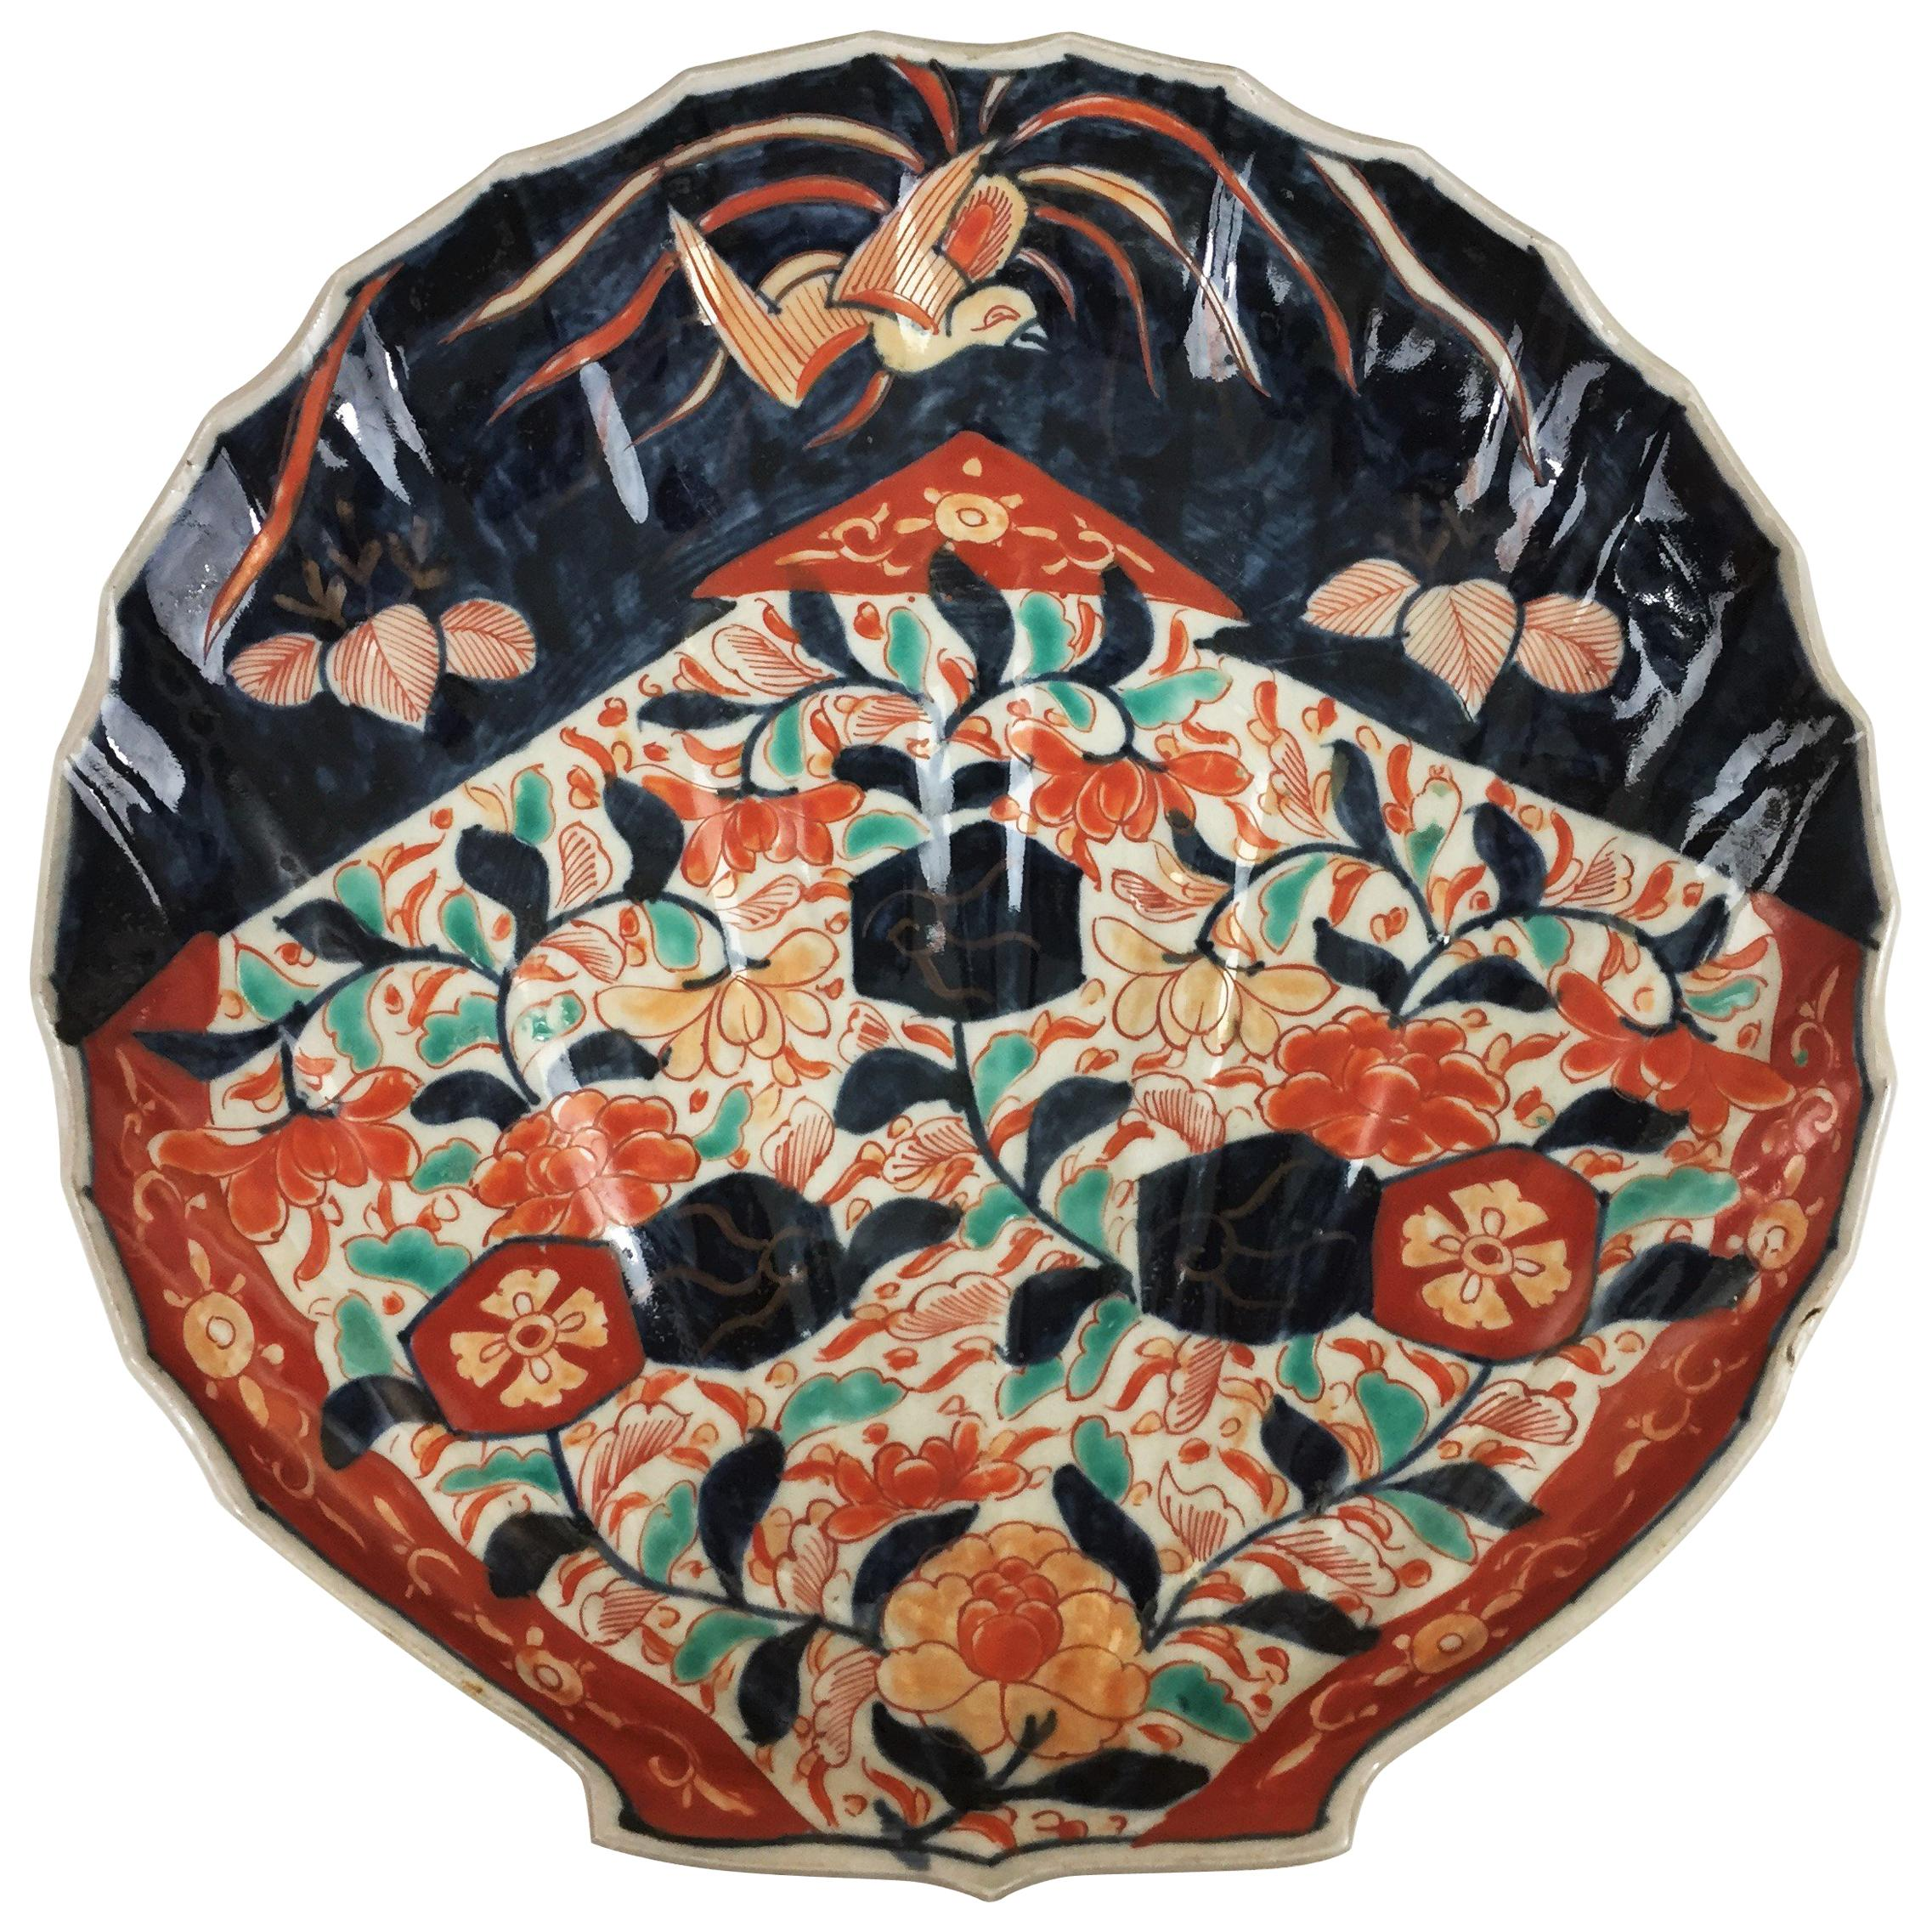 Japan Imari Porcelain Dish Shaped like a Scallop Shell Blue, Red and Turquoise